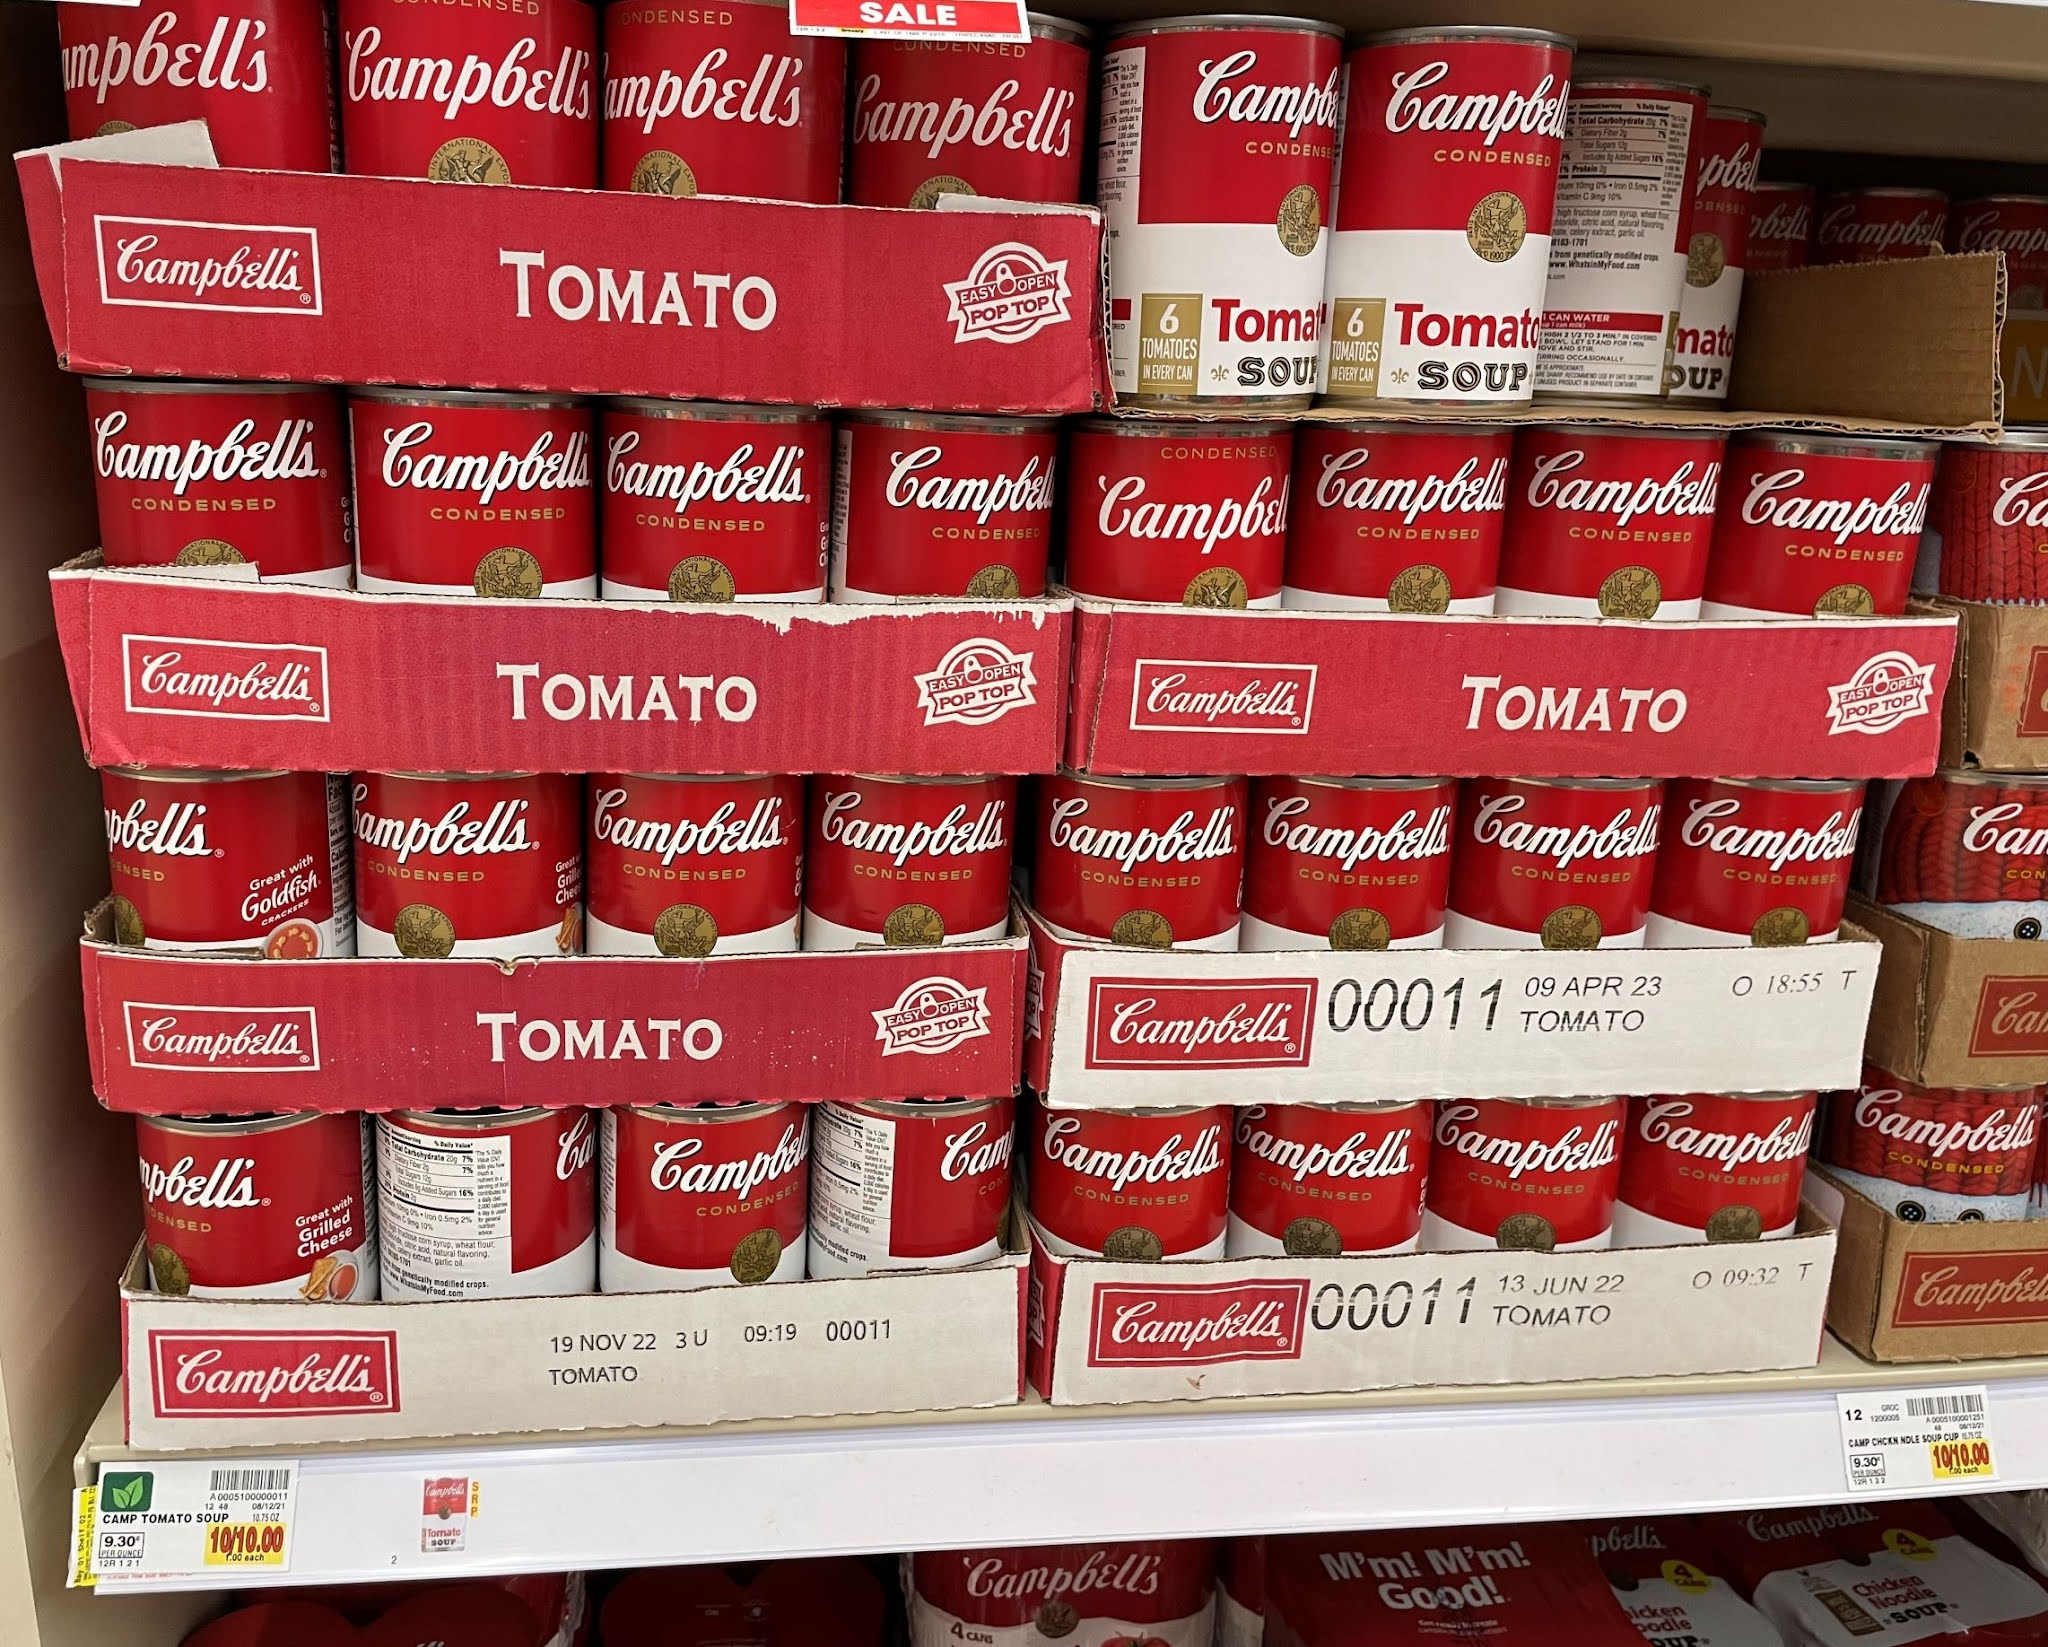 Cases of Campbell's Condensed Tomato Soup